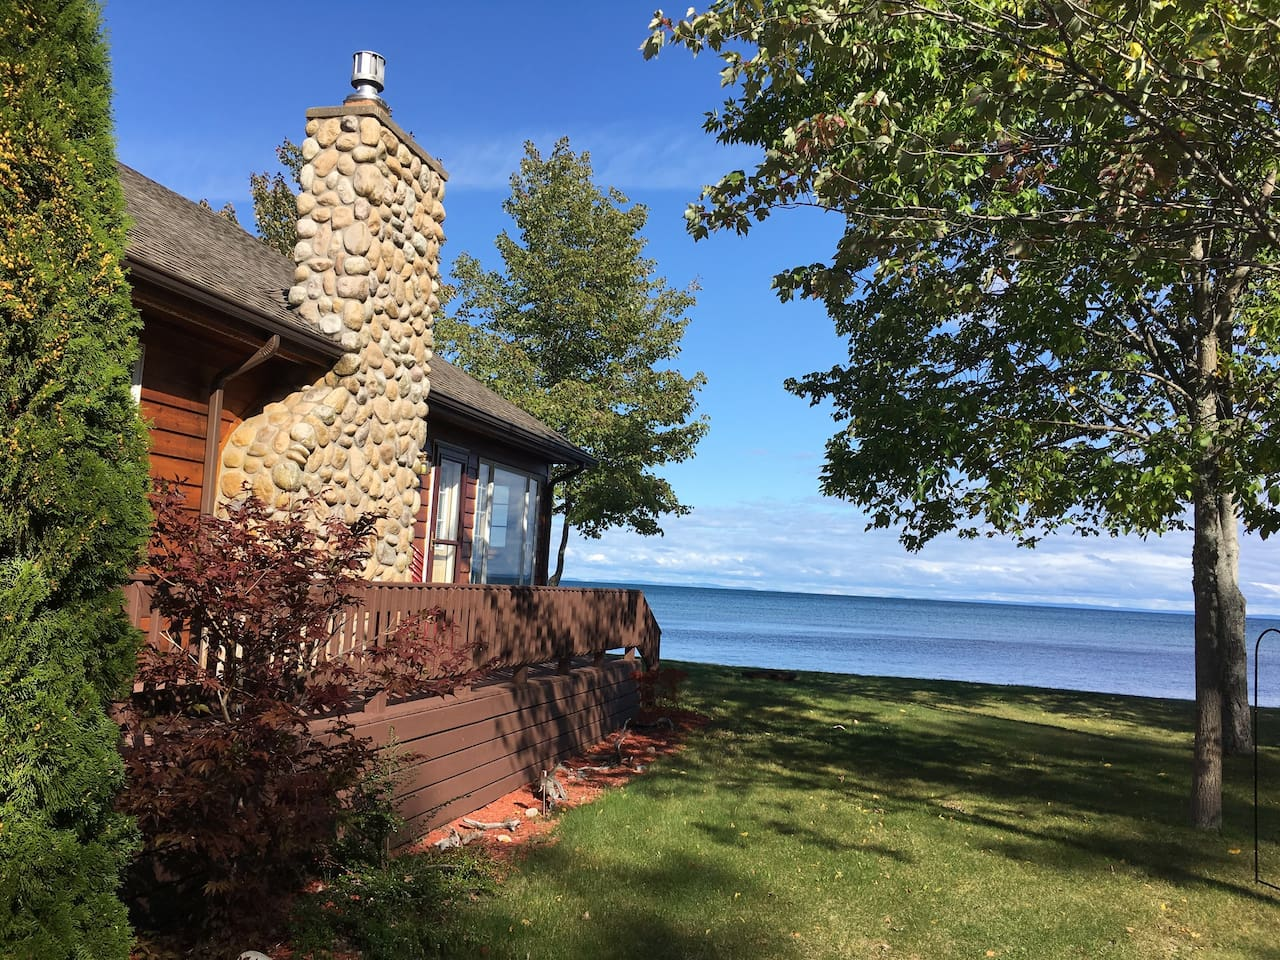 Paradise View Airbnb in Michigan offers beautiful views of Lake Superior